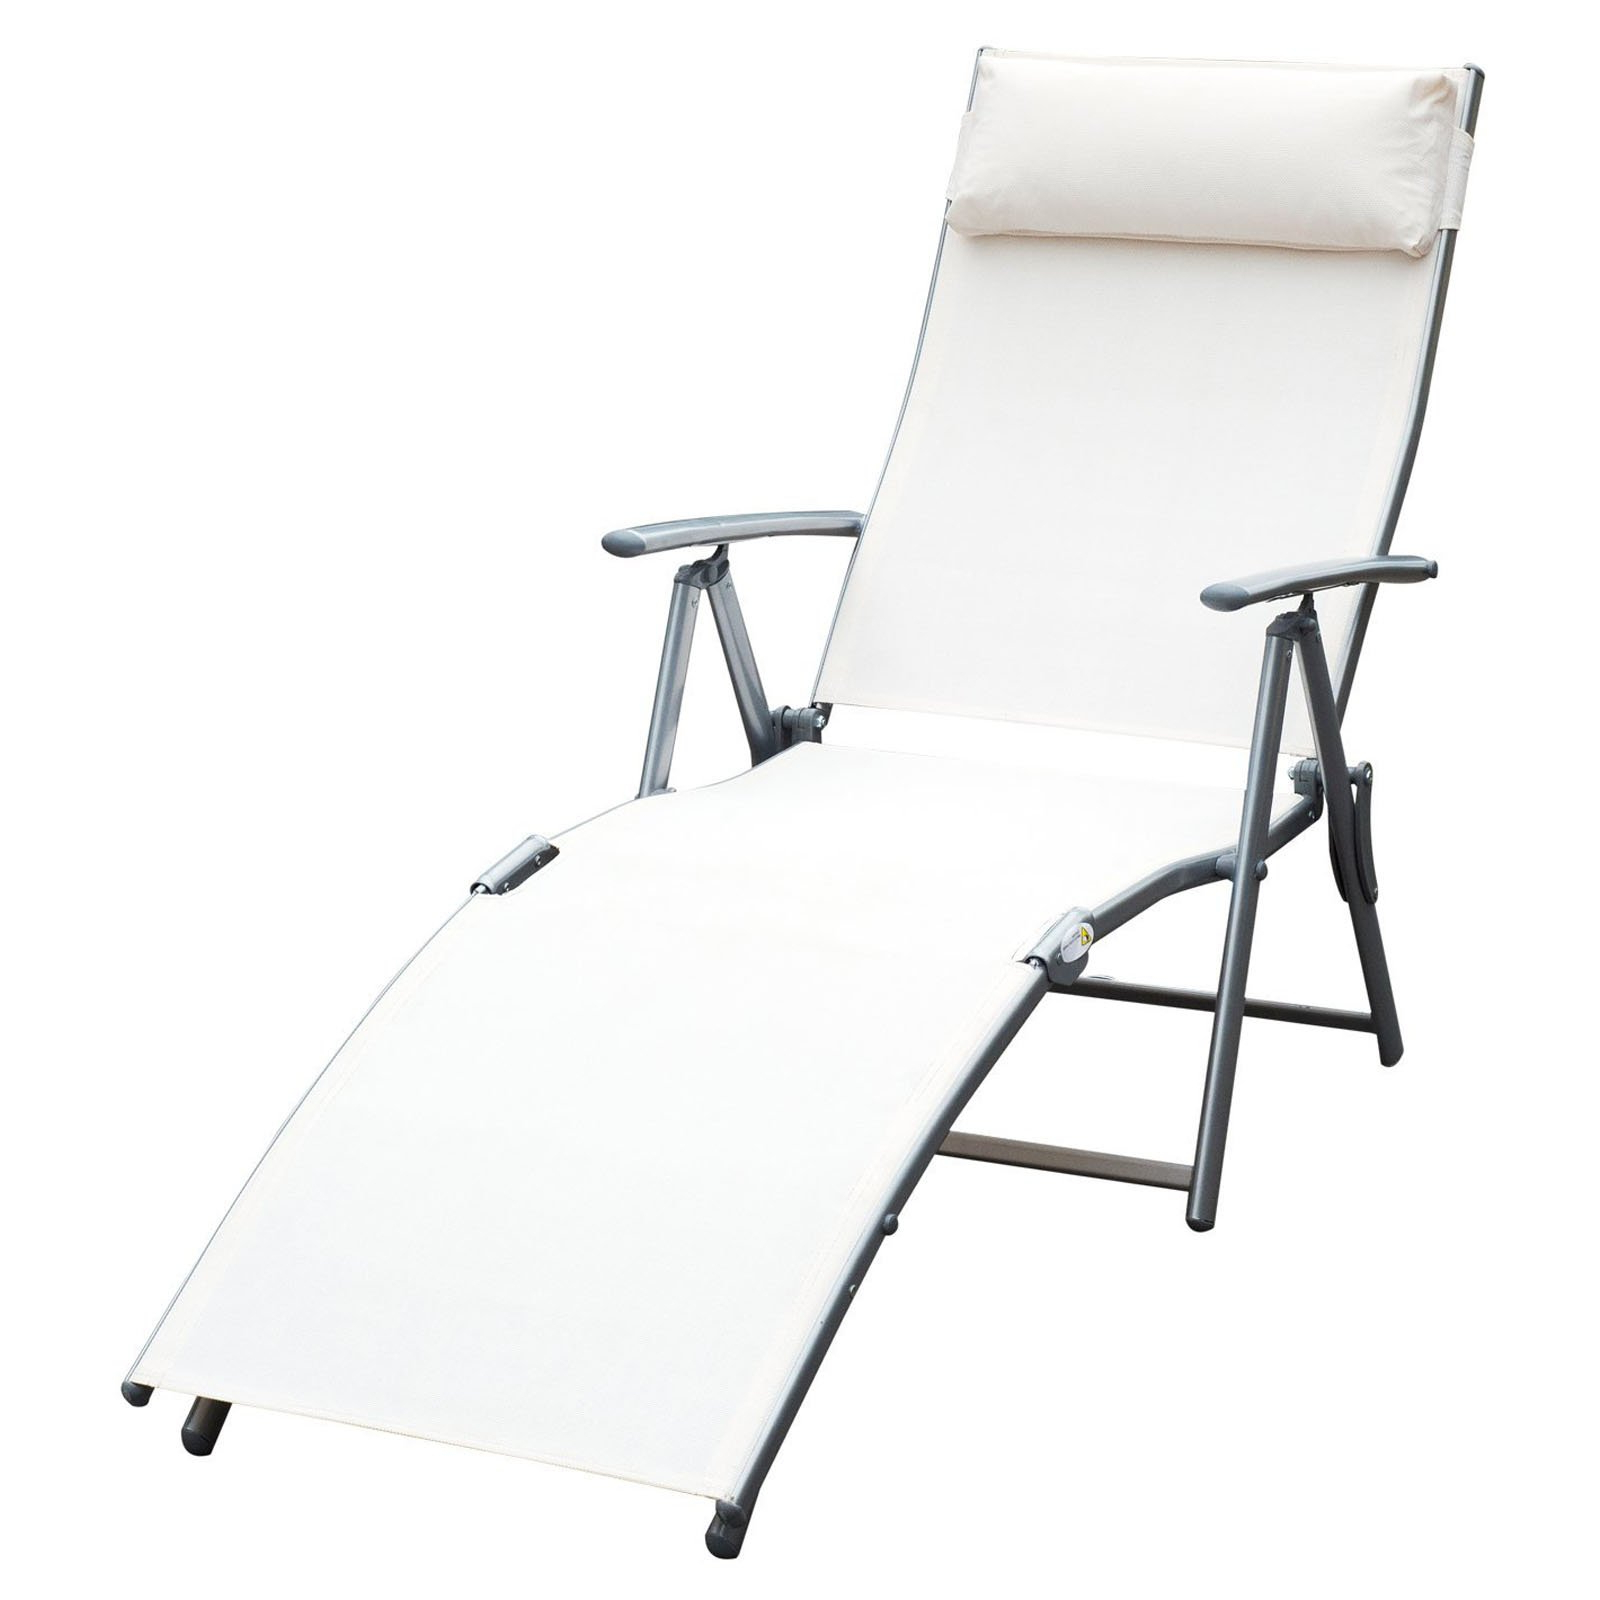 Steel Sling Fabric Outdoor Folding Chaise Lounges With Most Recently Released Outsunny Steel Sling Outdoor Folding Chaise Lounge Chair (View 21 of 25)